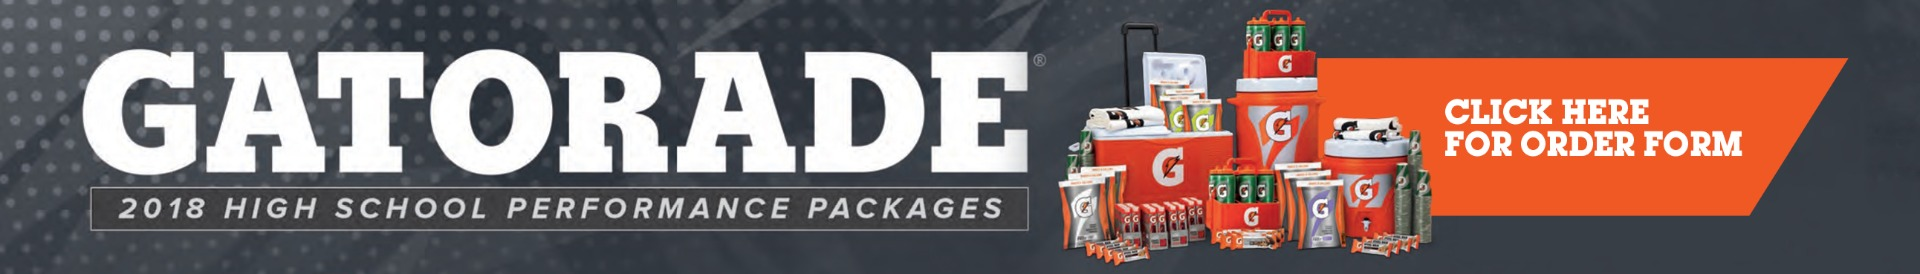 Gatorade High School Performance Packages Banner